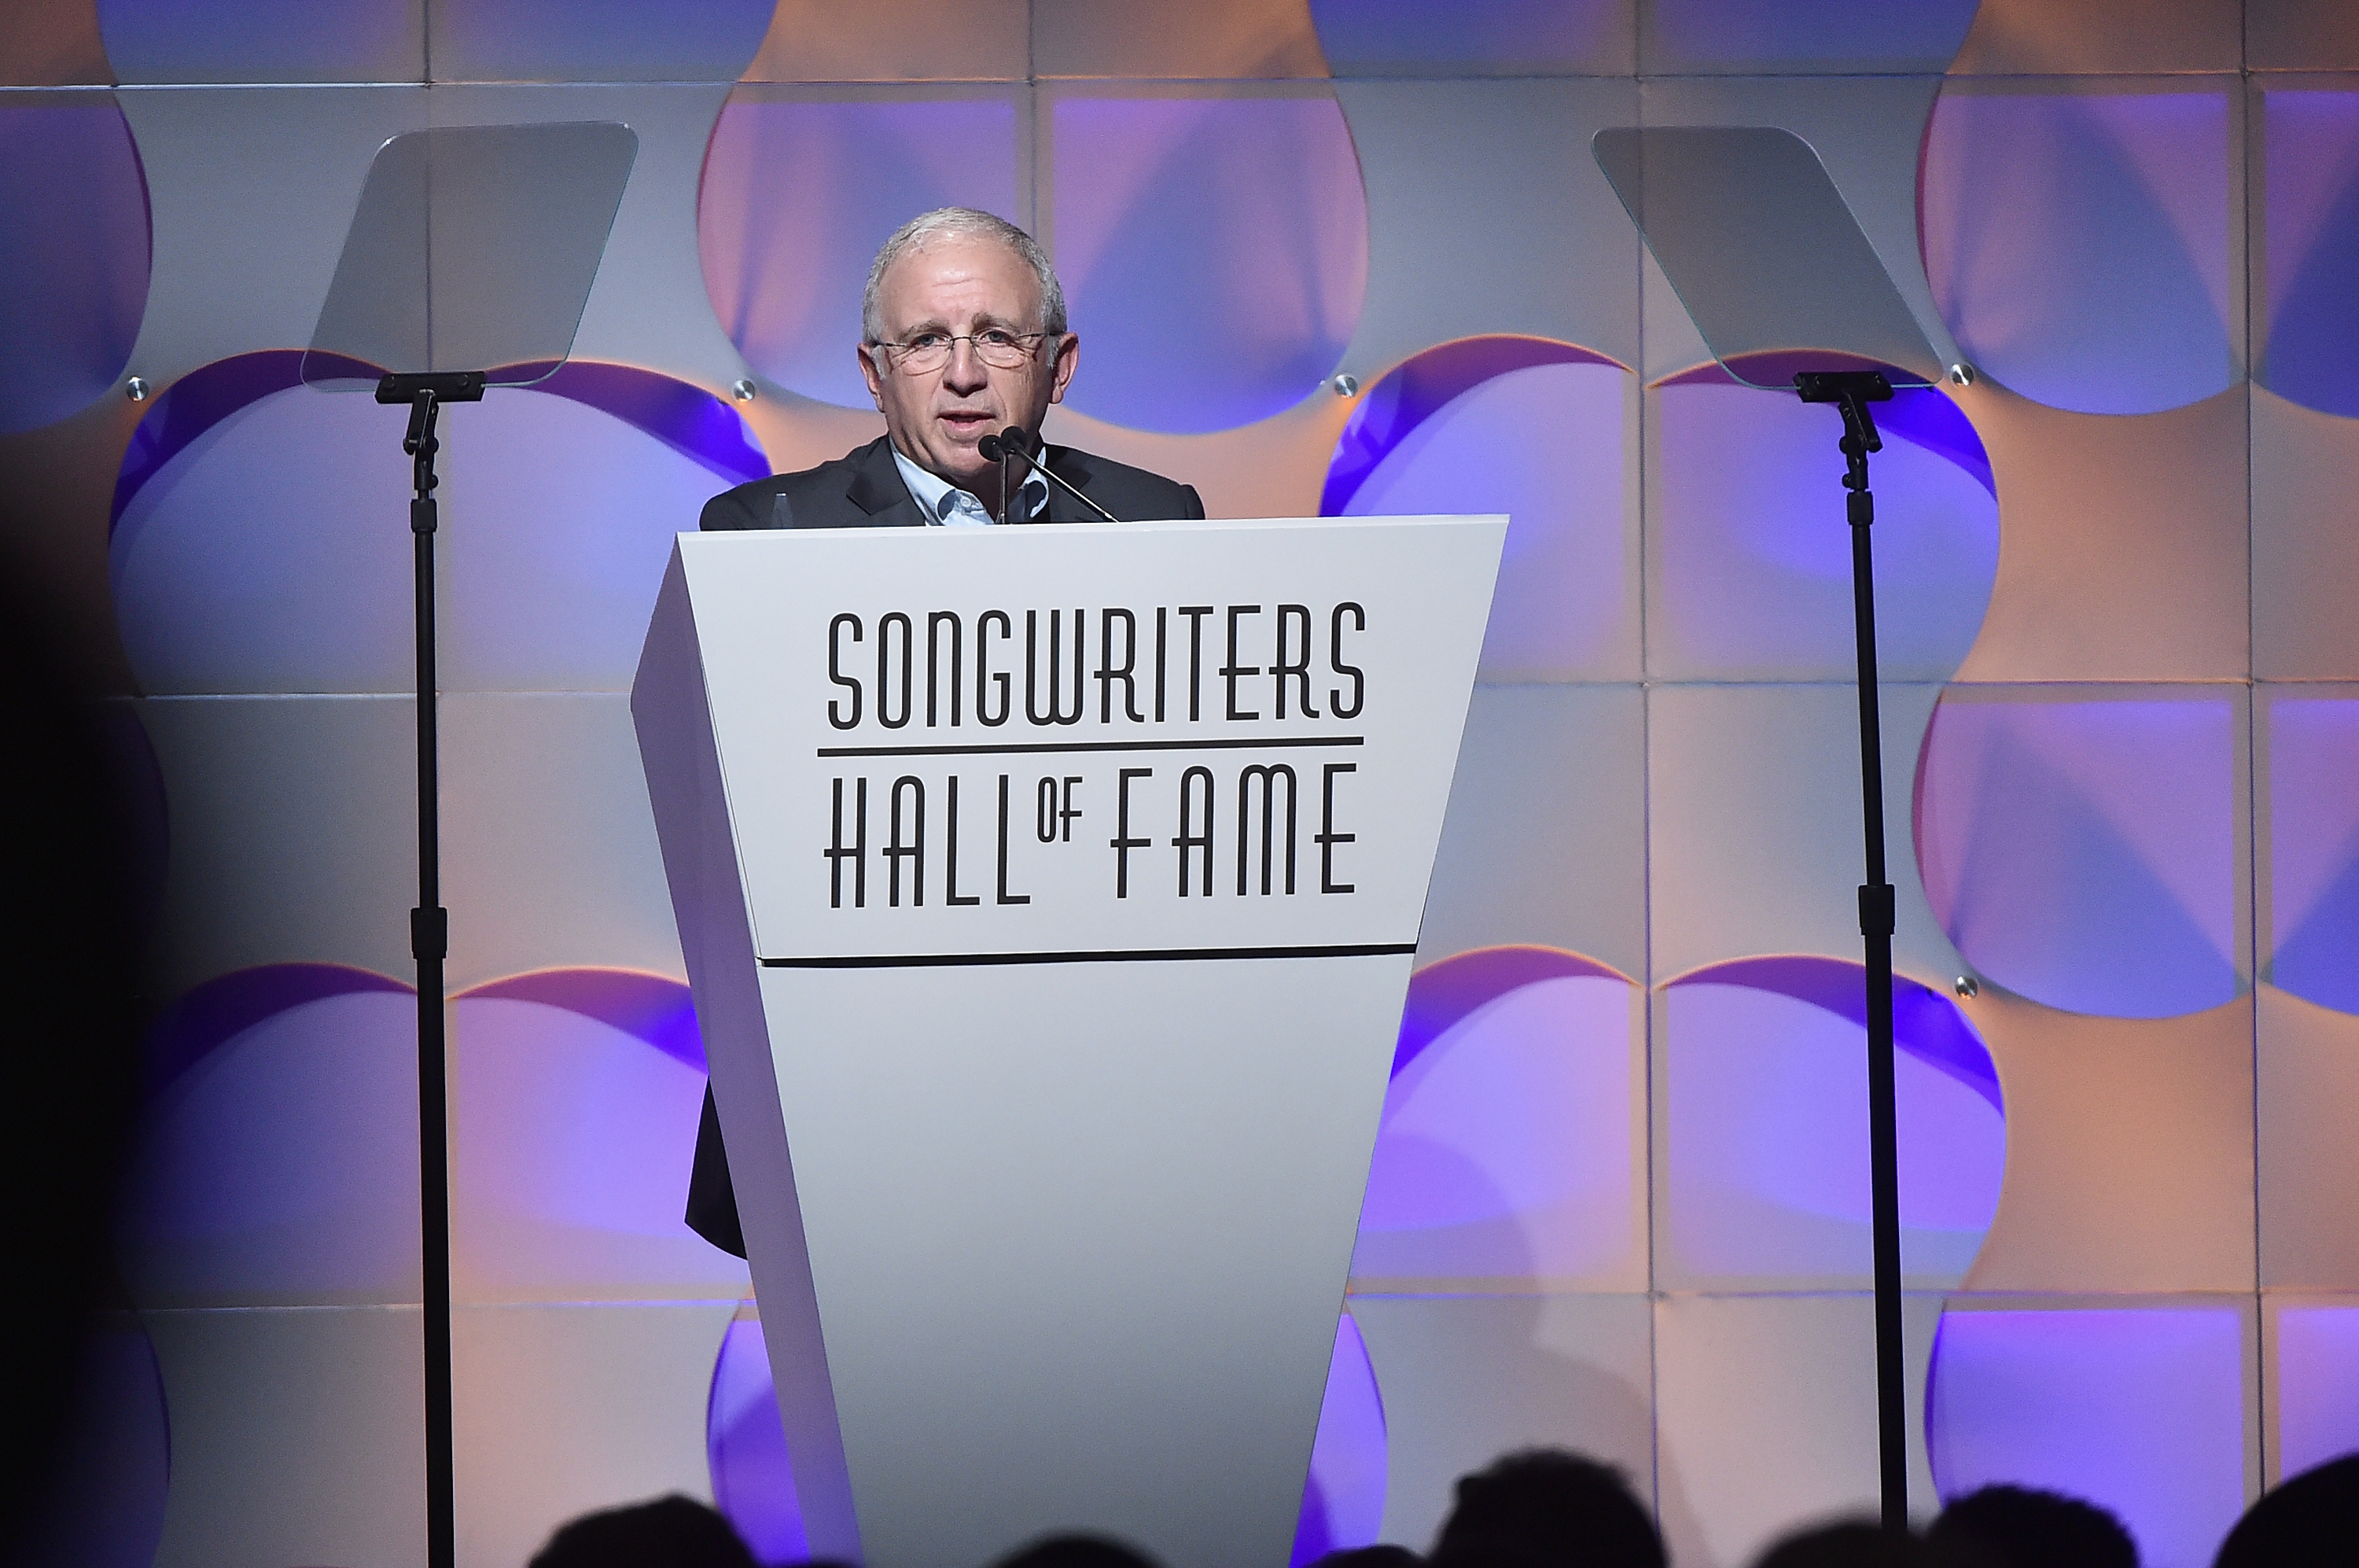 NEW YORK, NY - JUNE 15:  Irving Azoff speaks onstage at the Songwriters Hall Of Fame 48th Annual Induction and Awards at New York Marriott Marquis Hotel on June 15, 2017 in New York City.  (Photo by Theo Wargo/Getty Images for Songwriters Hall Of Fame) *** Local Caption *** Irving Azoff